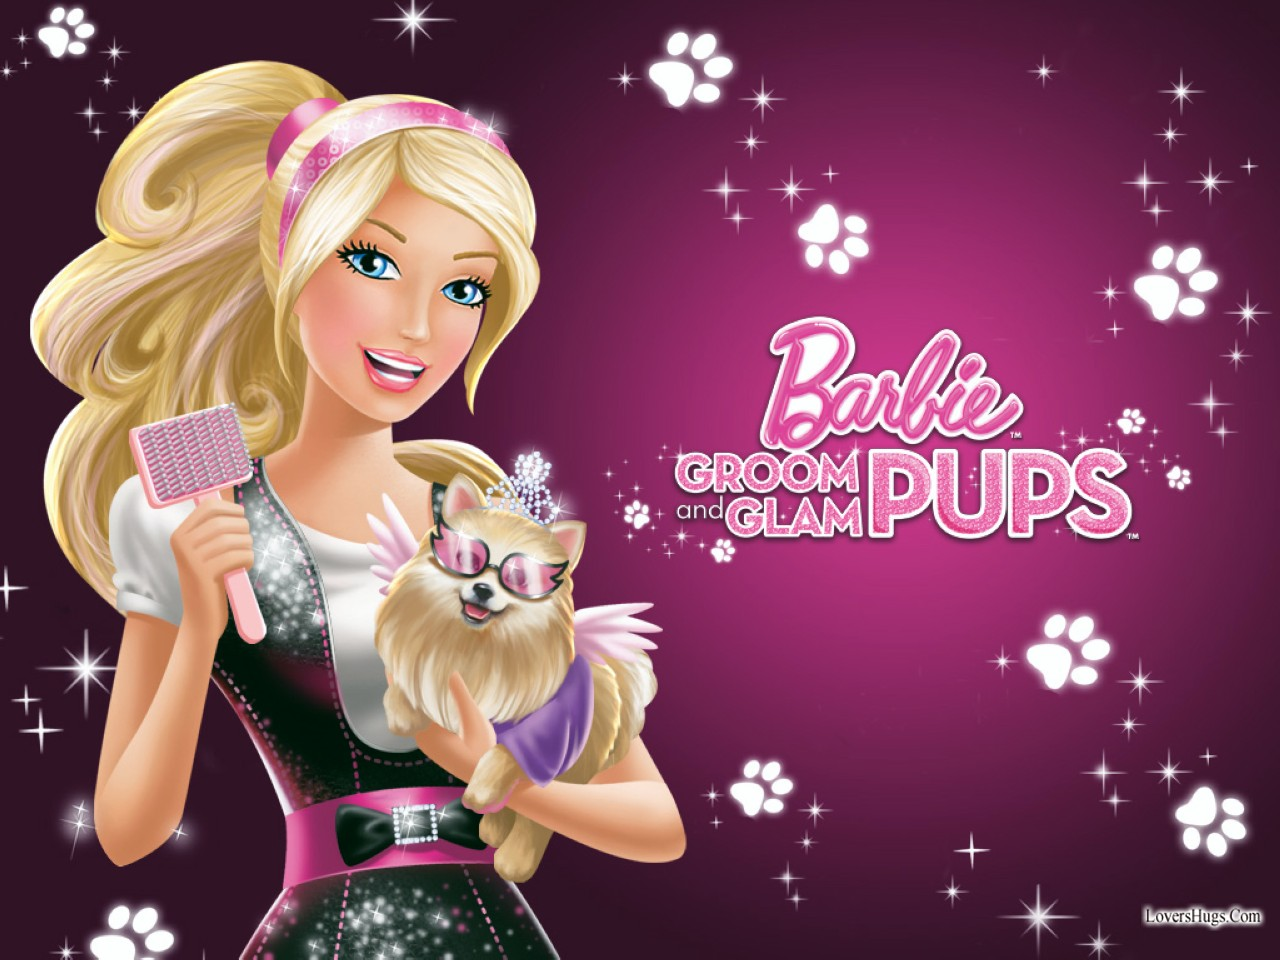 Barbie hd wallpapers wallpaper202 barbie pups widescreen wallpaper for free voltagebd Images